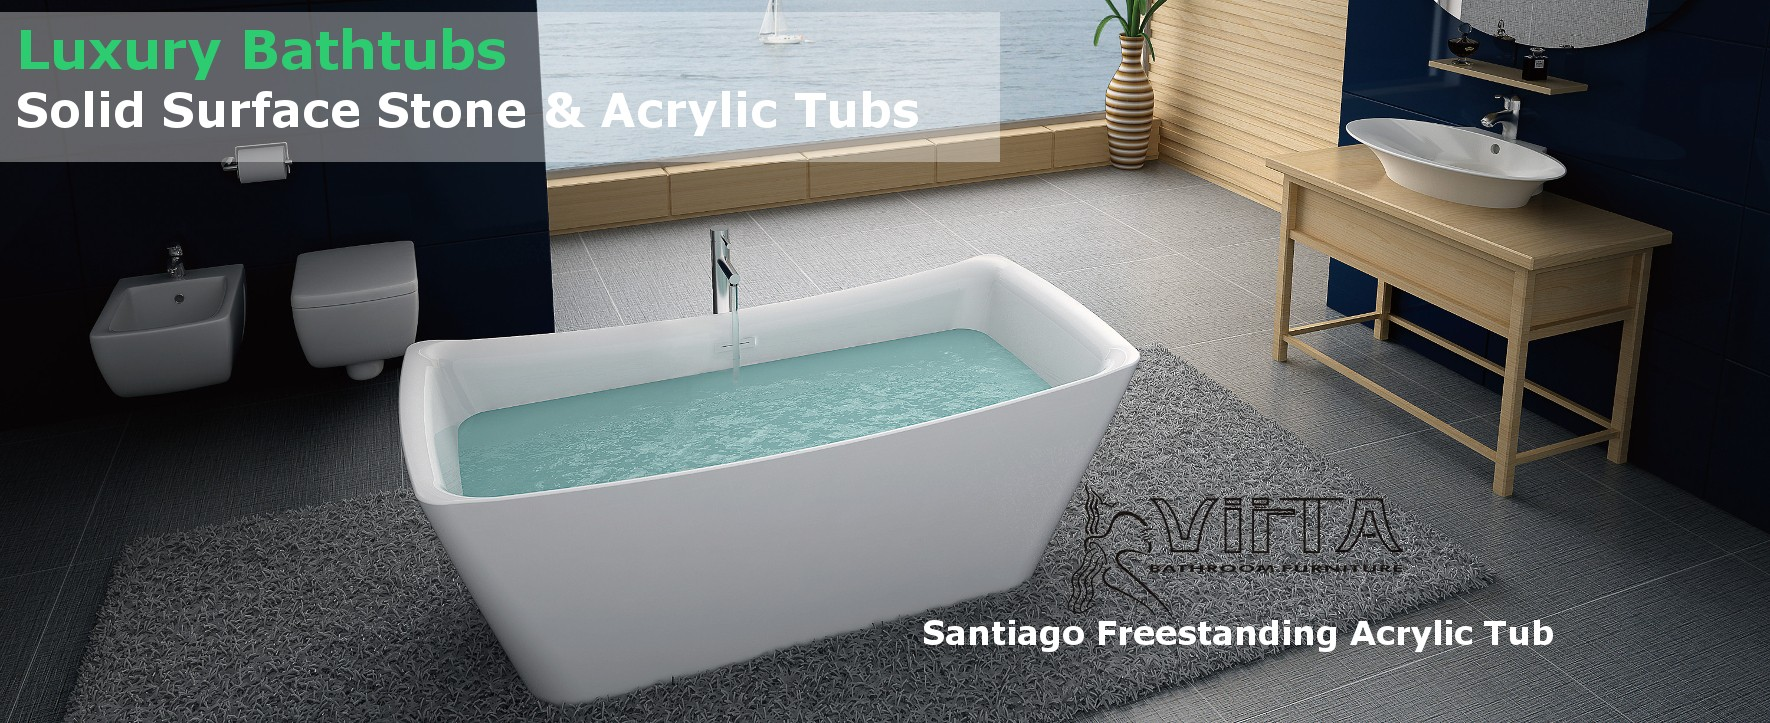 Solid Surface and Acrylic Bathtubs